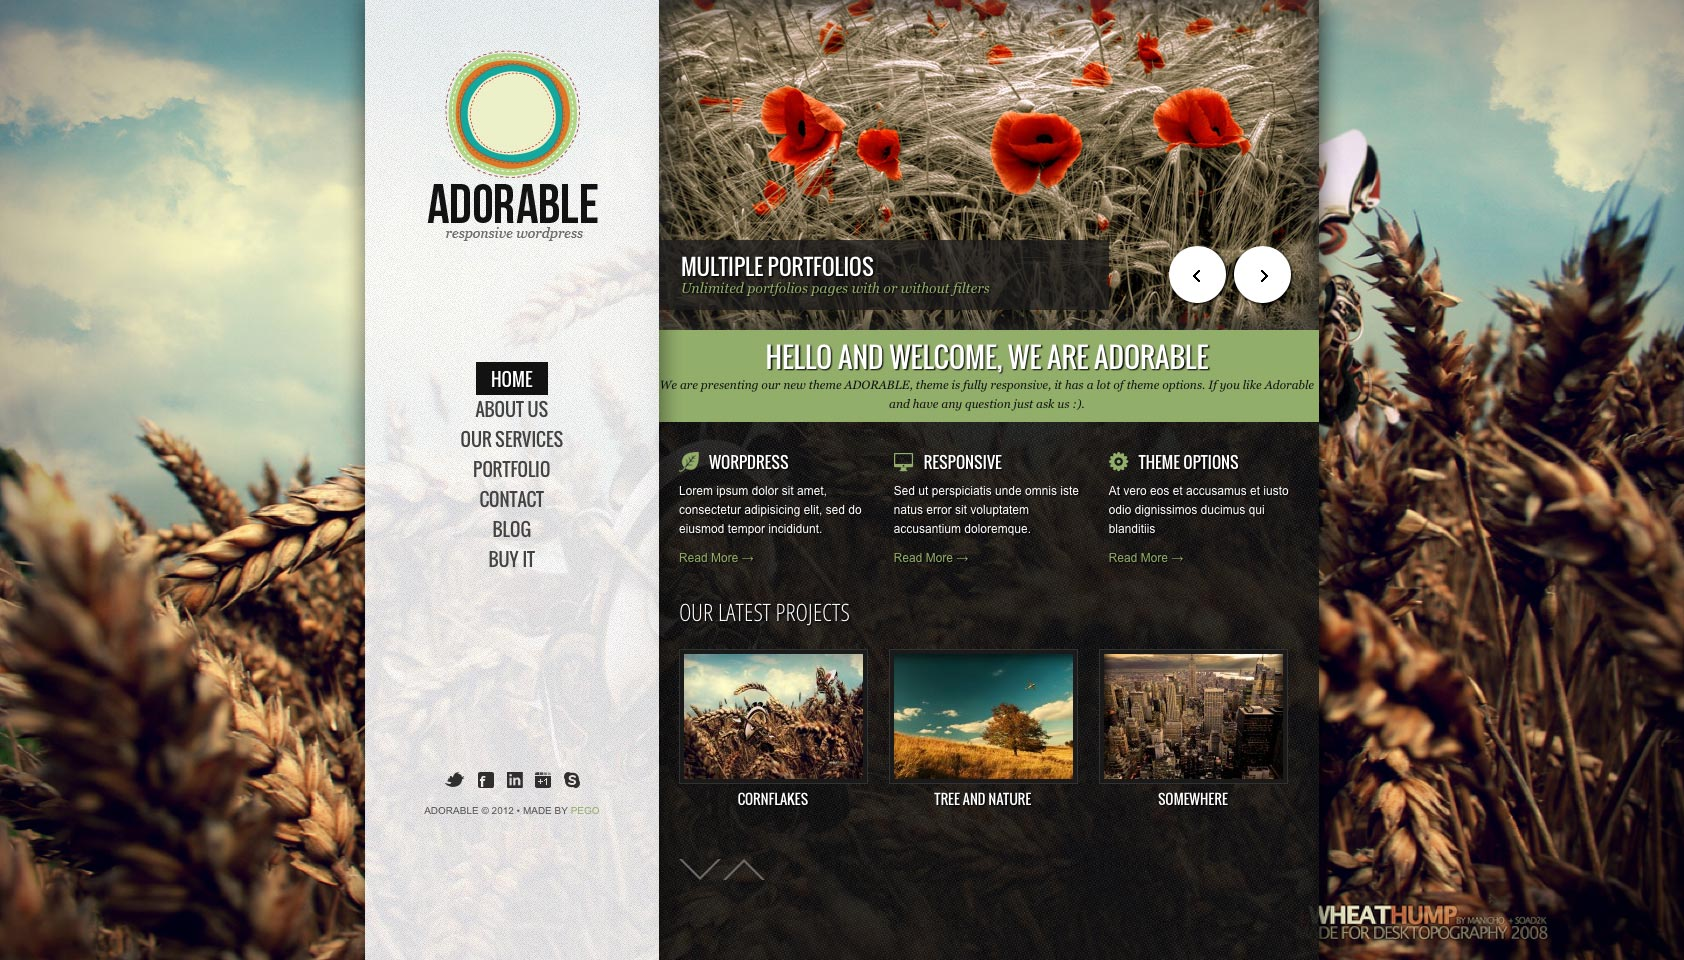 new wp themes to inspire you